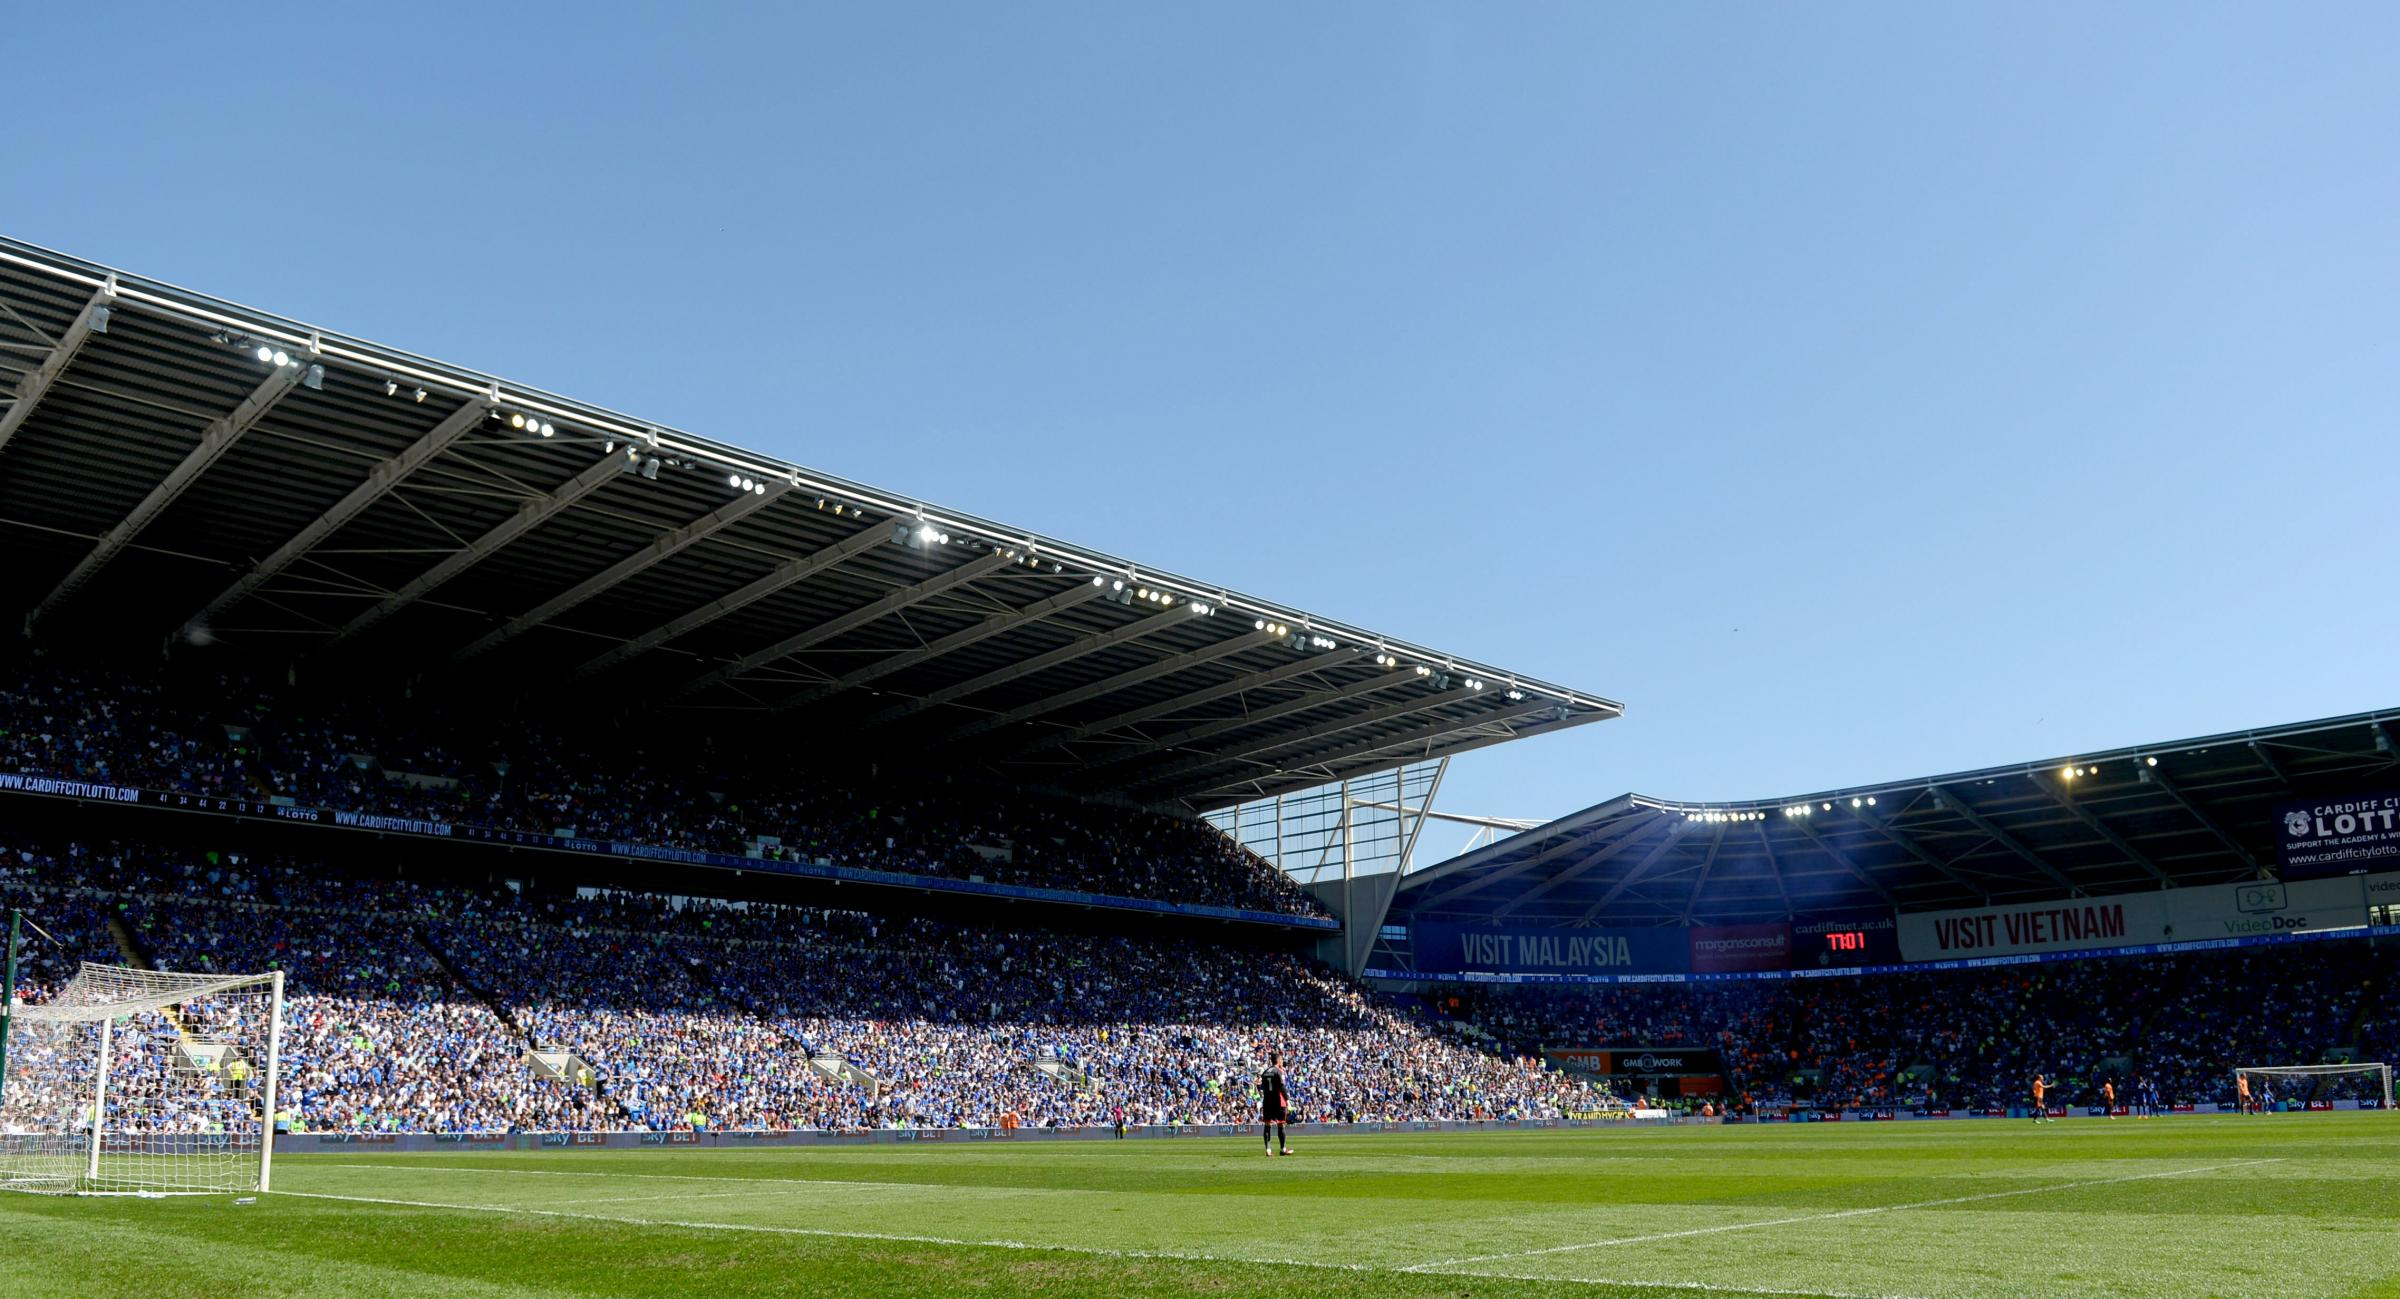 Cardiff City fans save Huddersfield Town heart attack victim's life